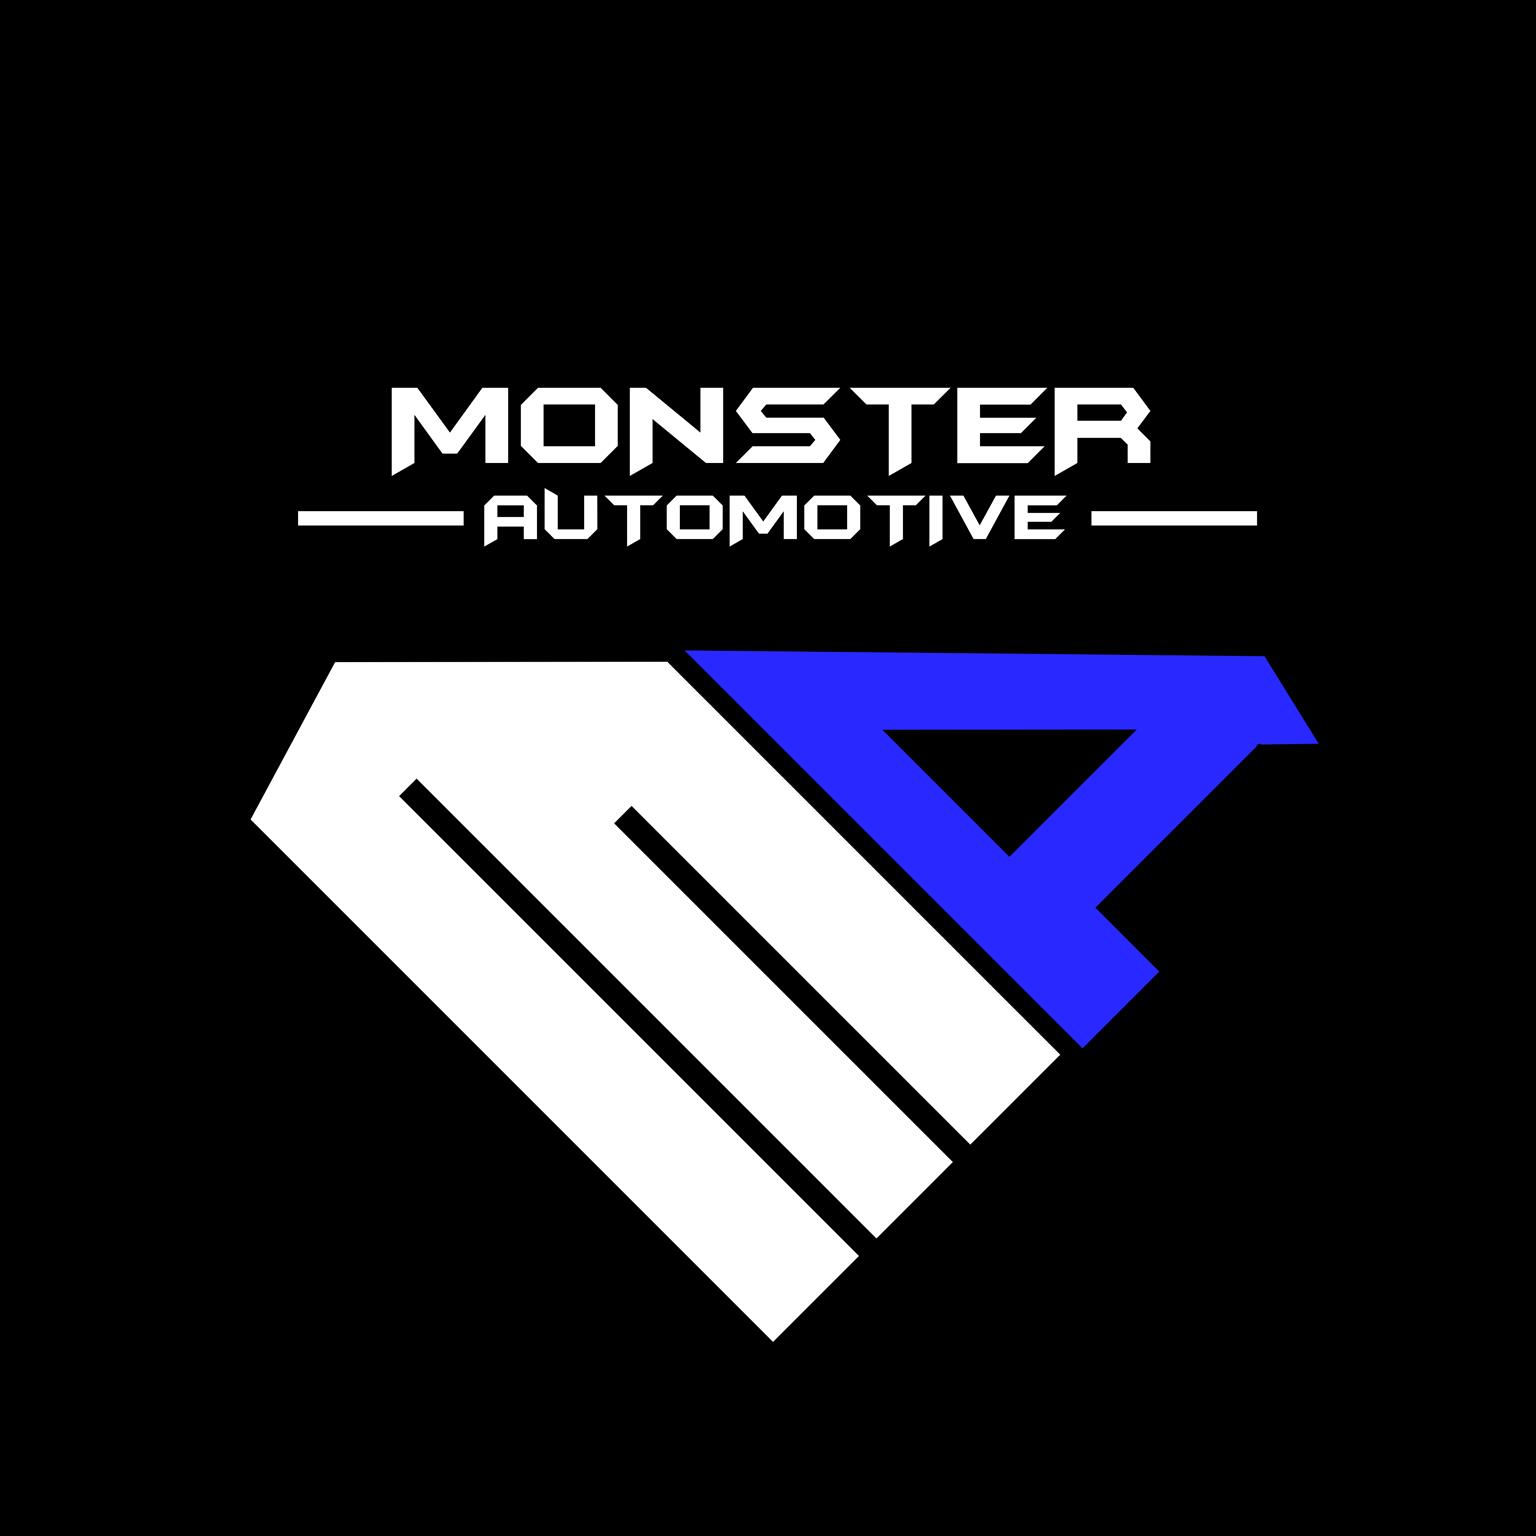 Find Monster Automotive 's adverts listed on Junk Mail